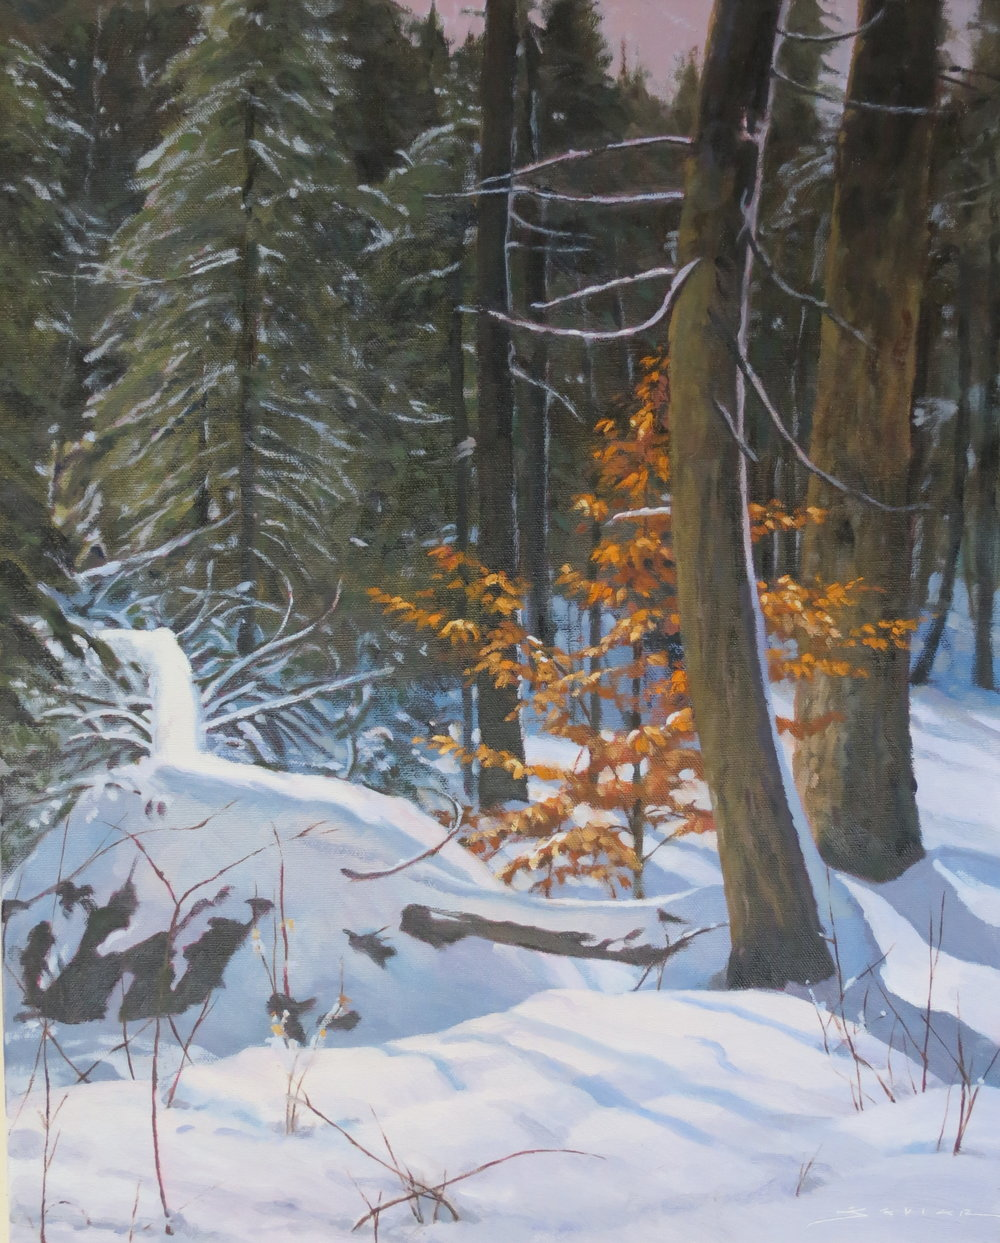 Algonquin Winter, 20 x 16, oil